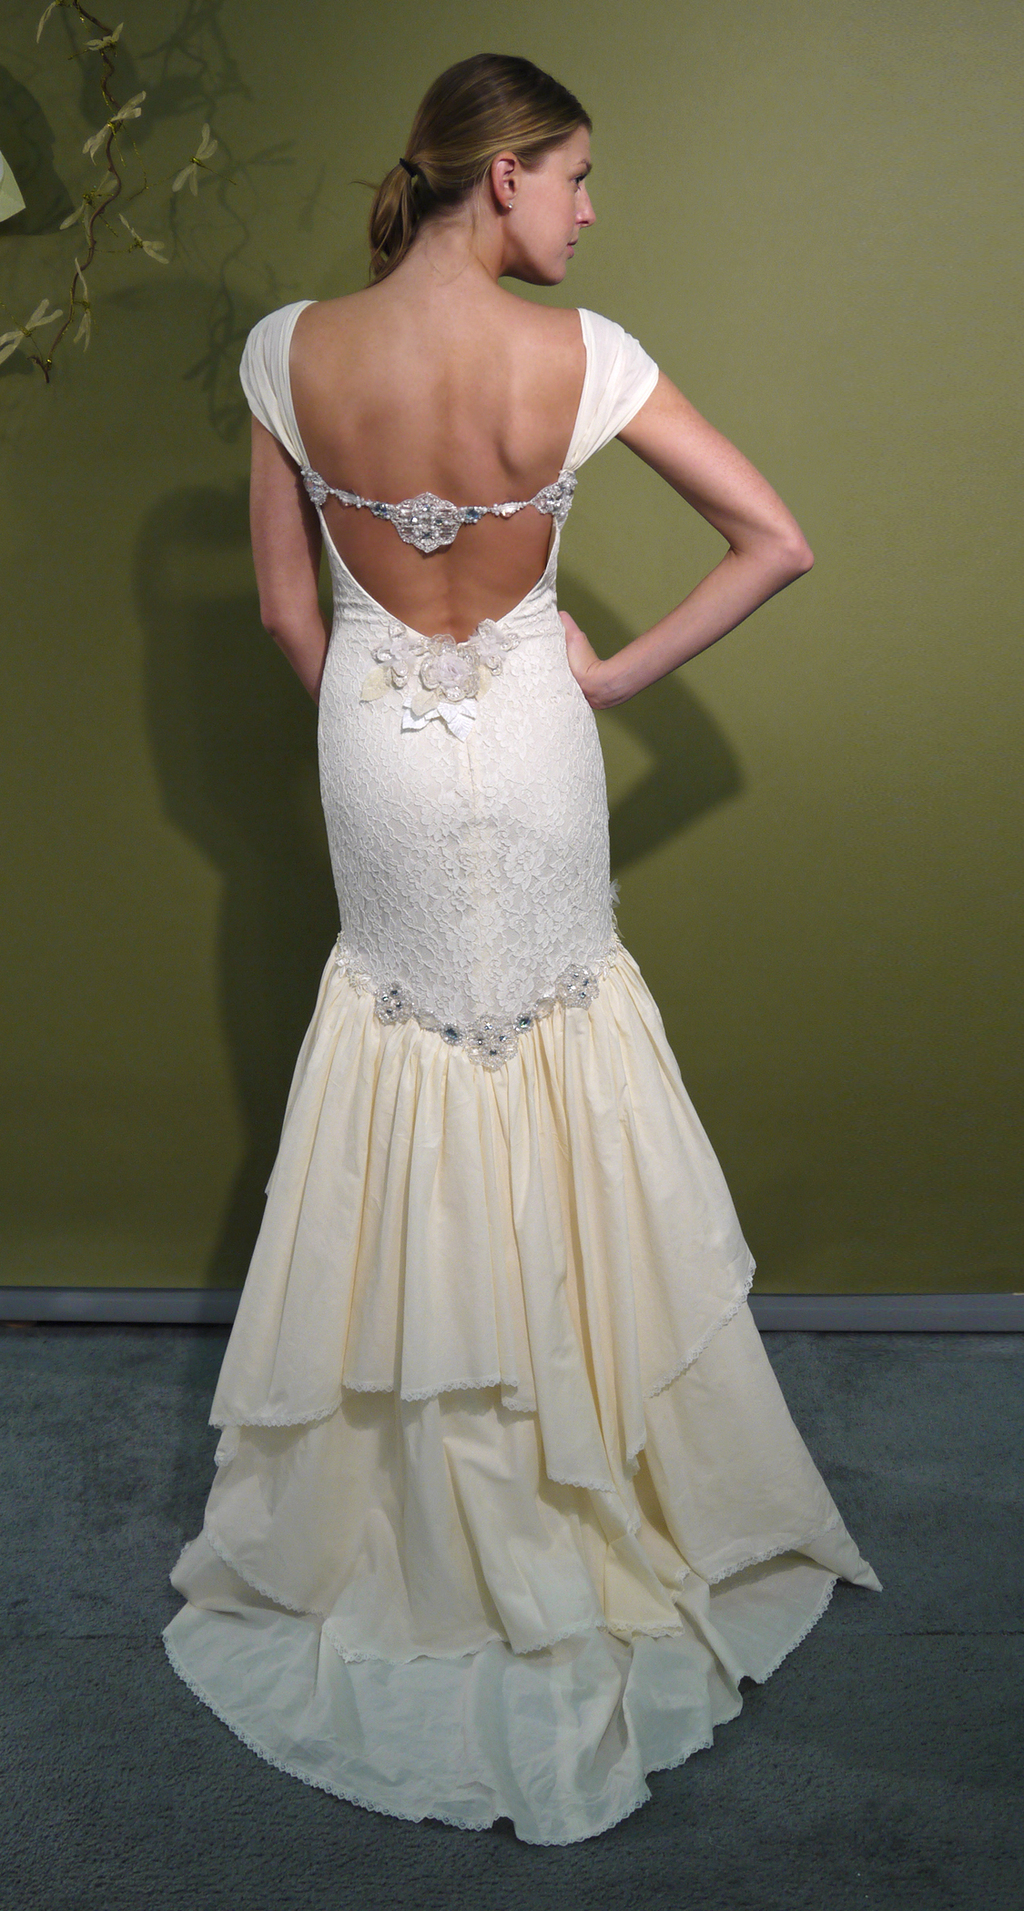 Fall-2011-wedding-dress-emmaline-bridal-gown-claire-pettibone-cap-sleeves-open-back-lace-2.full